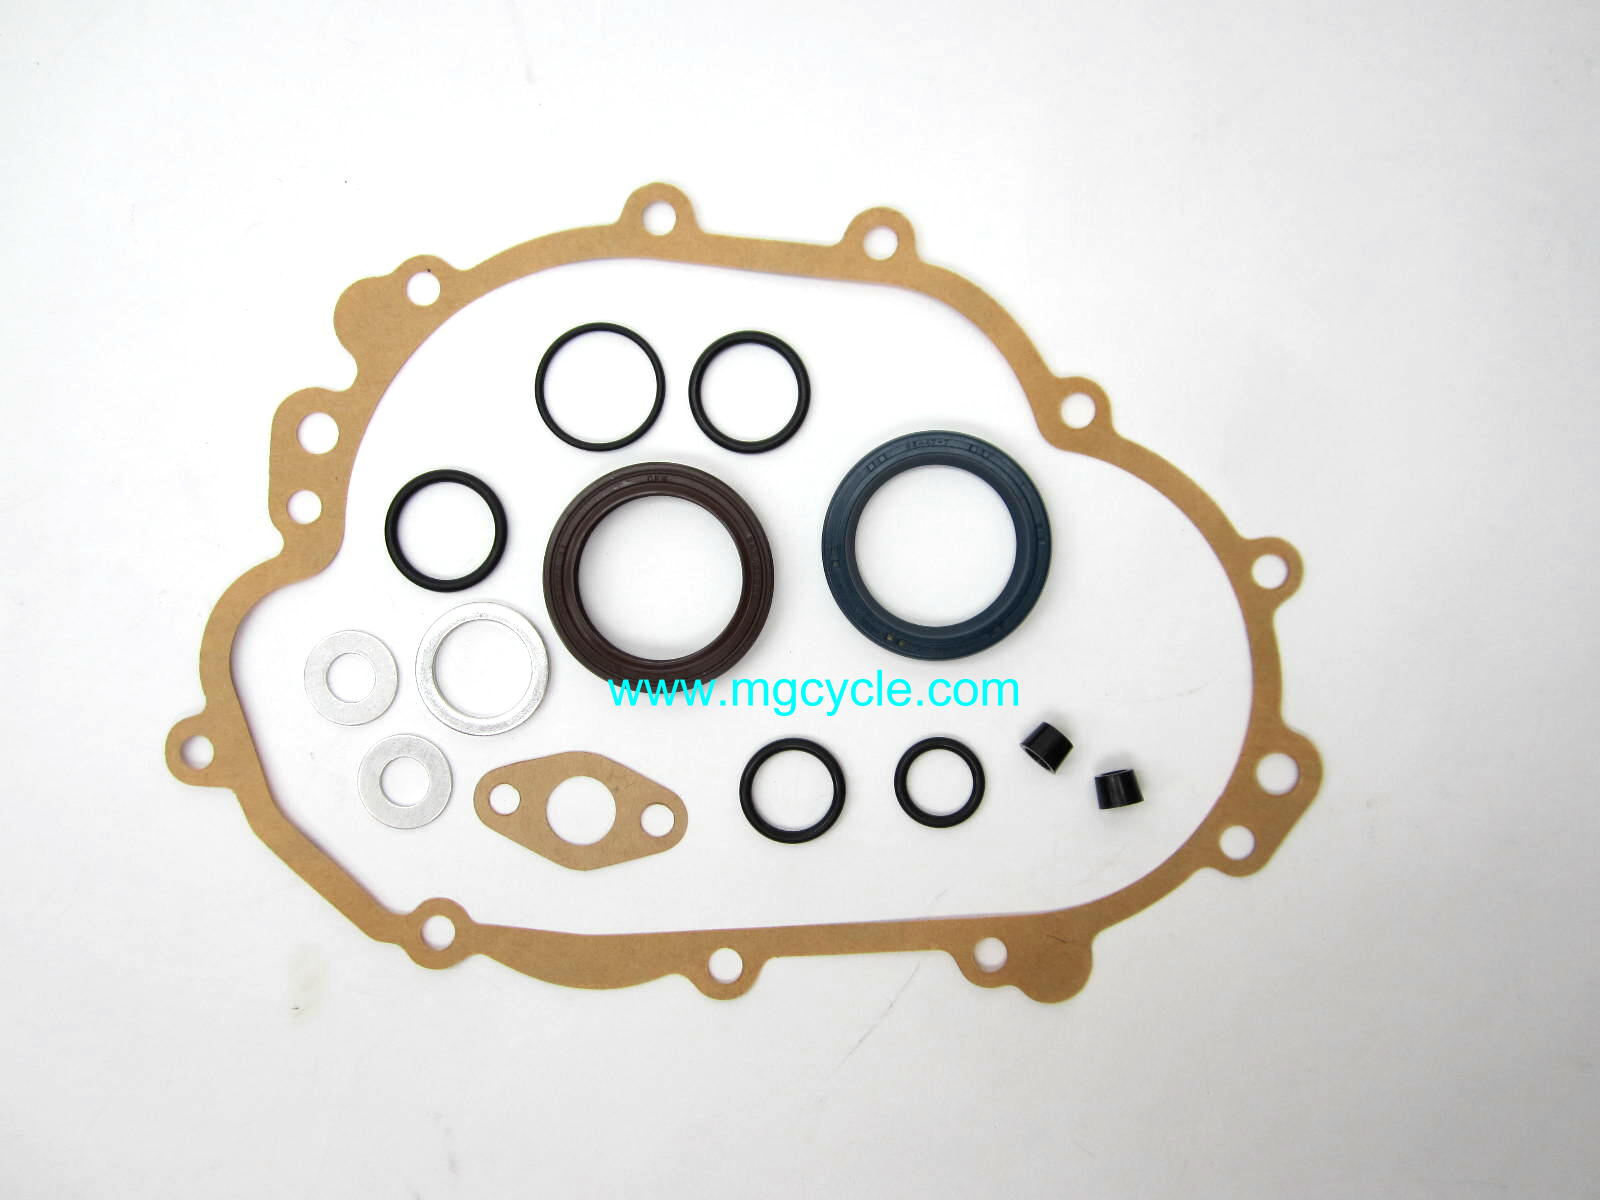 5 speed rear transmission cover gasket, big twins